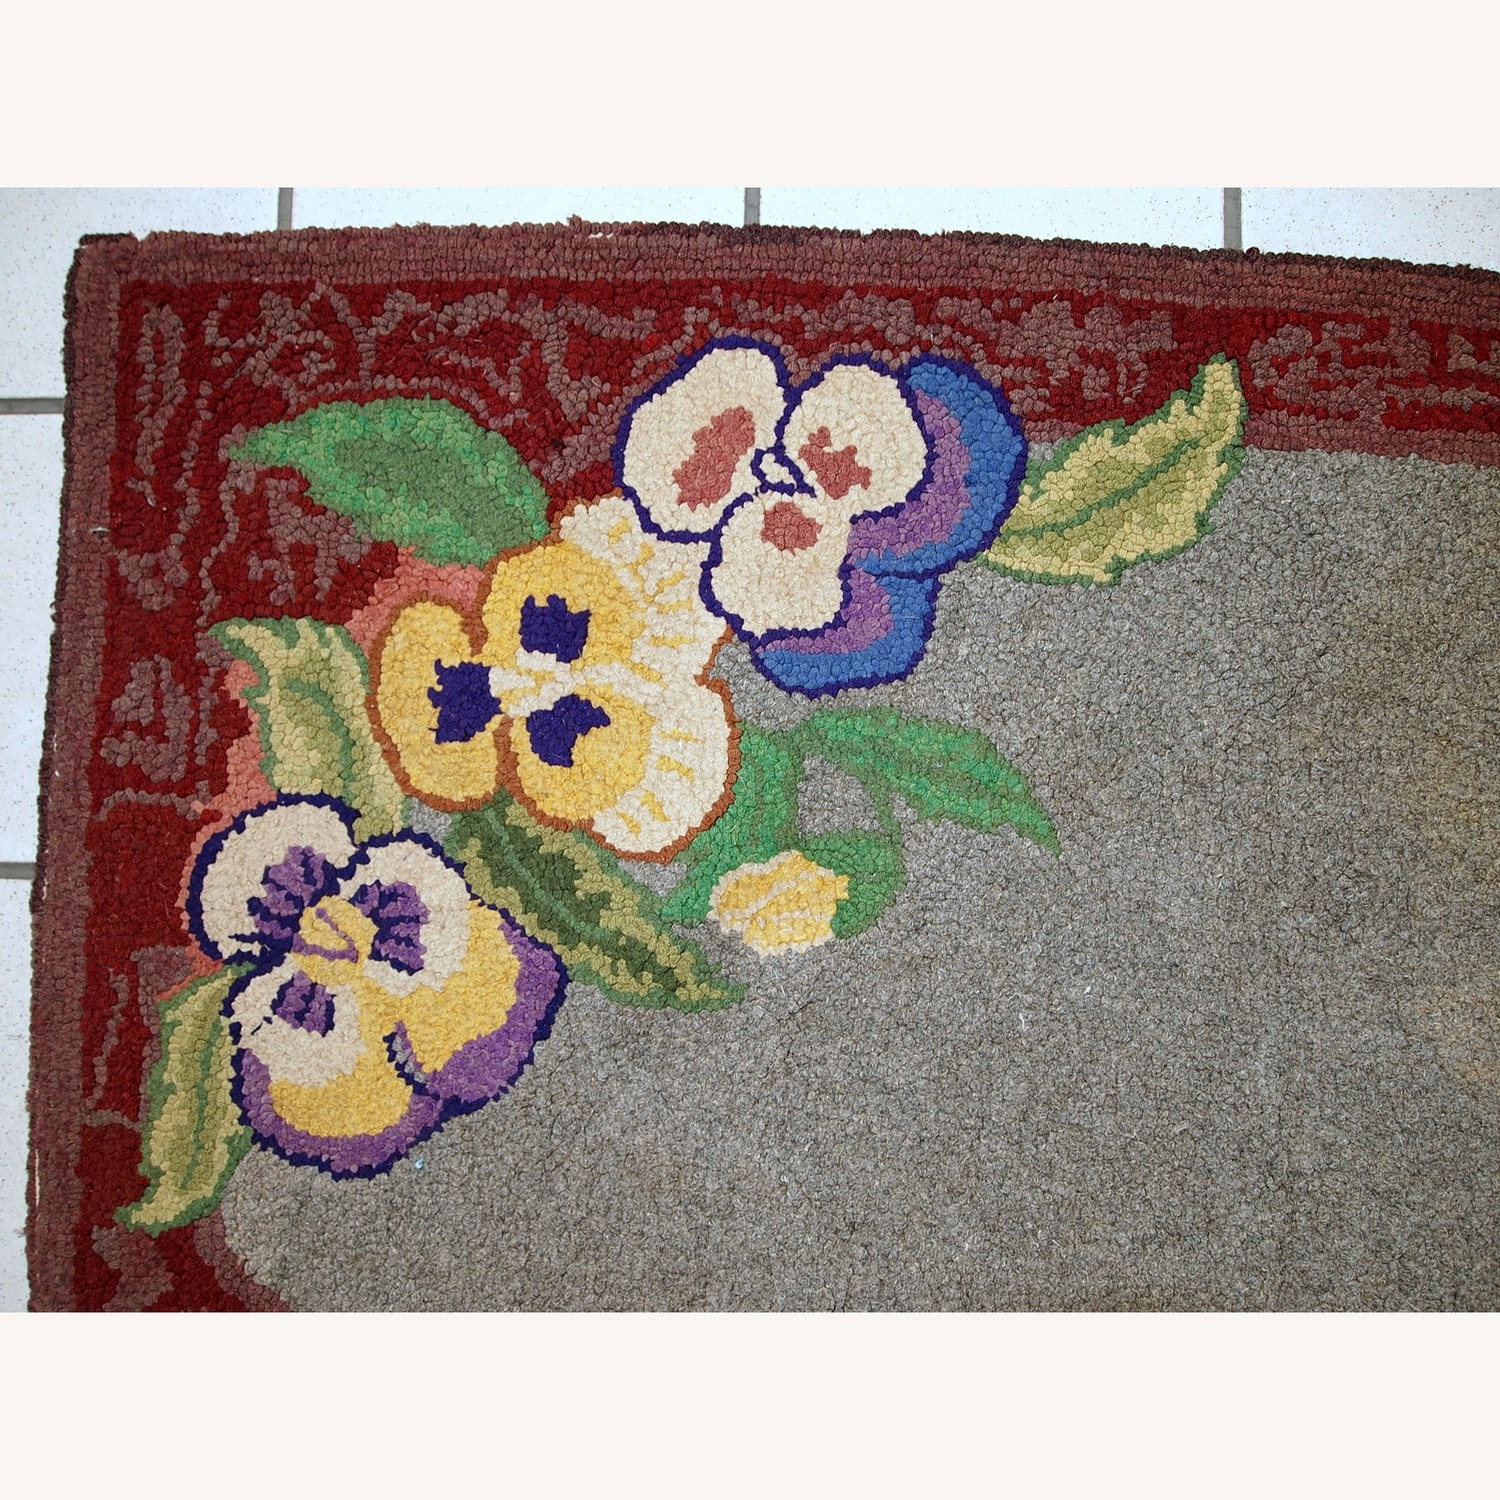 Handmade Antique American Hooked Rug - image-4